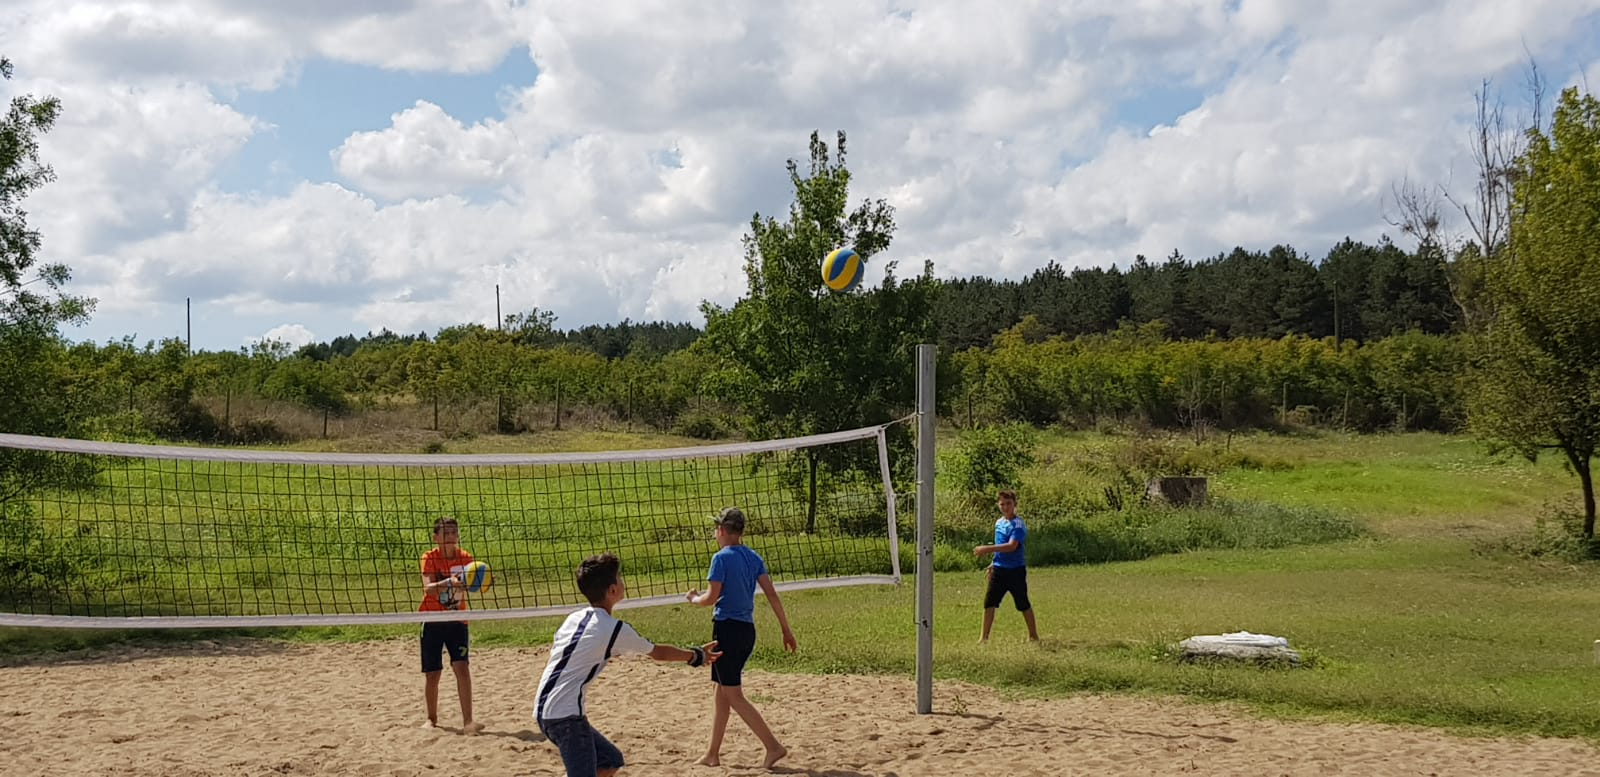 language vacations for kids at Bulgarian seaside Z camp, Day 27 - volleyball court - boy prepares to hit the ball